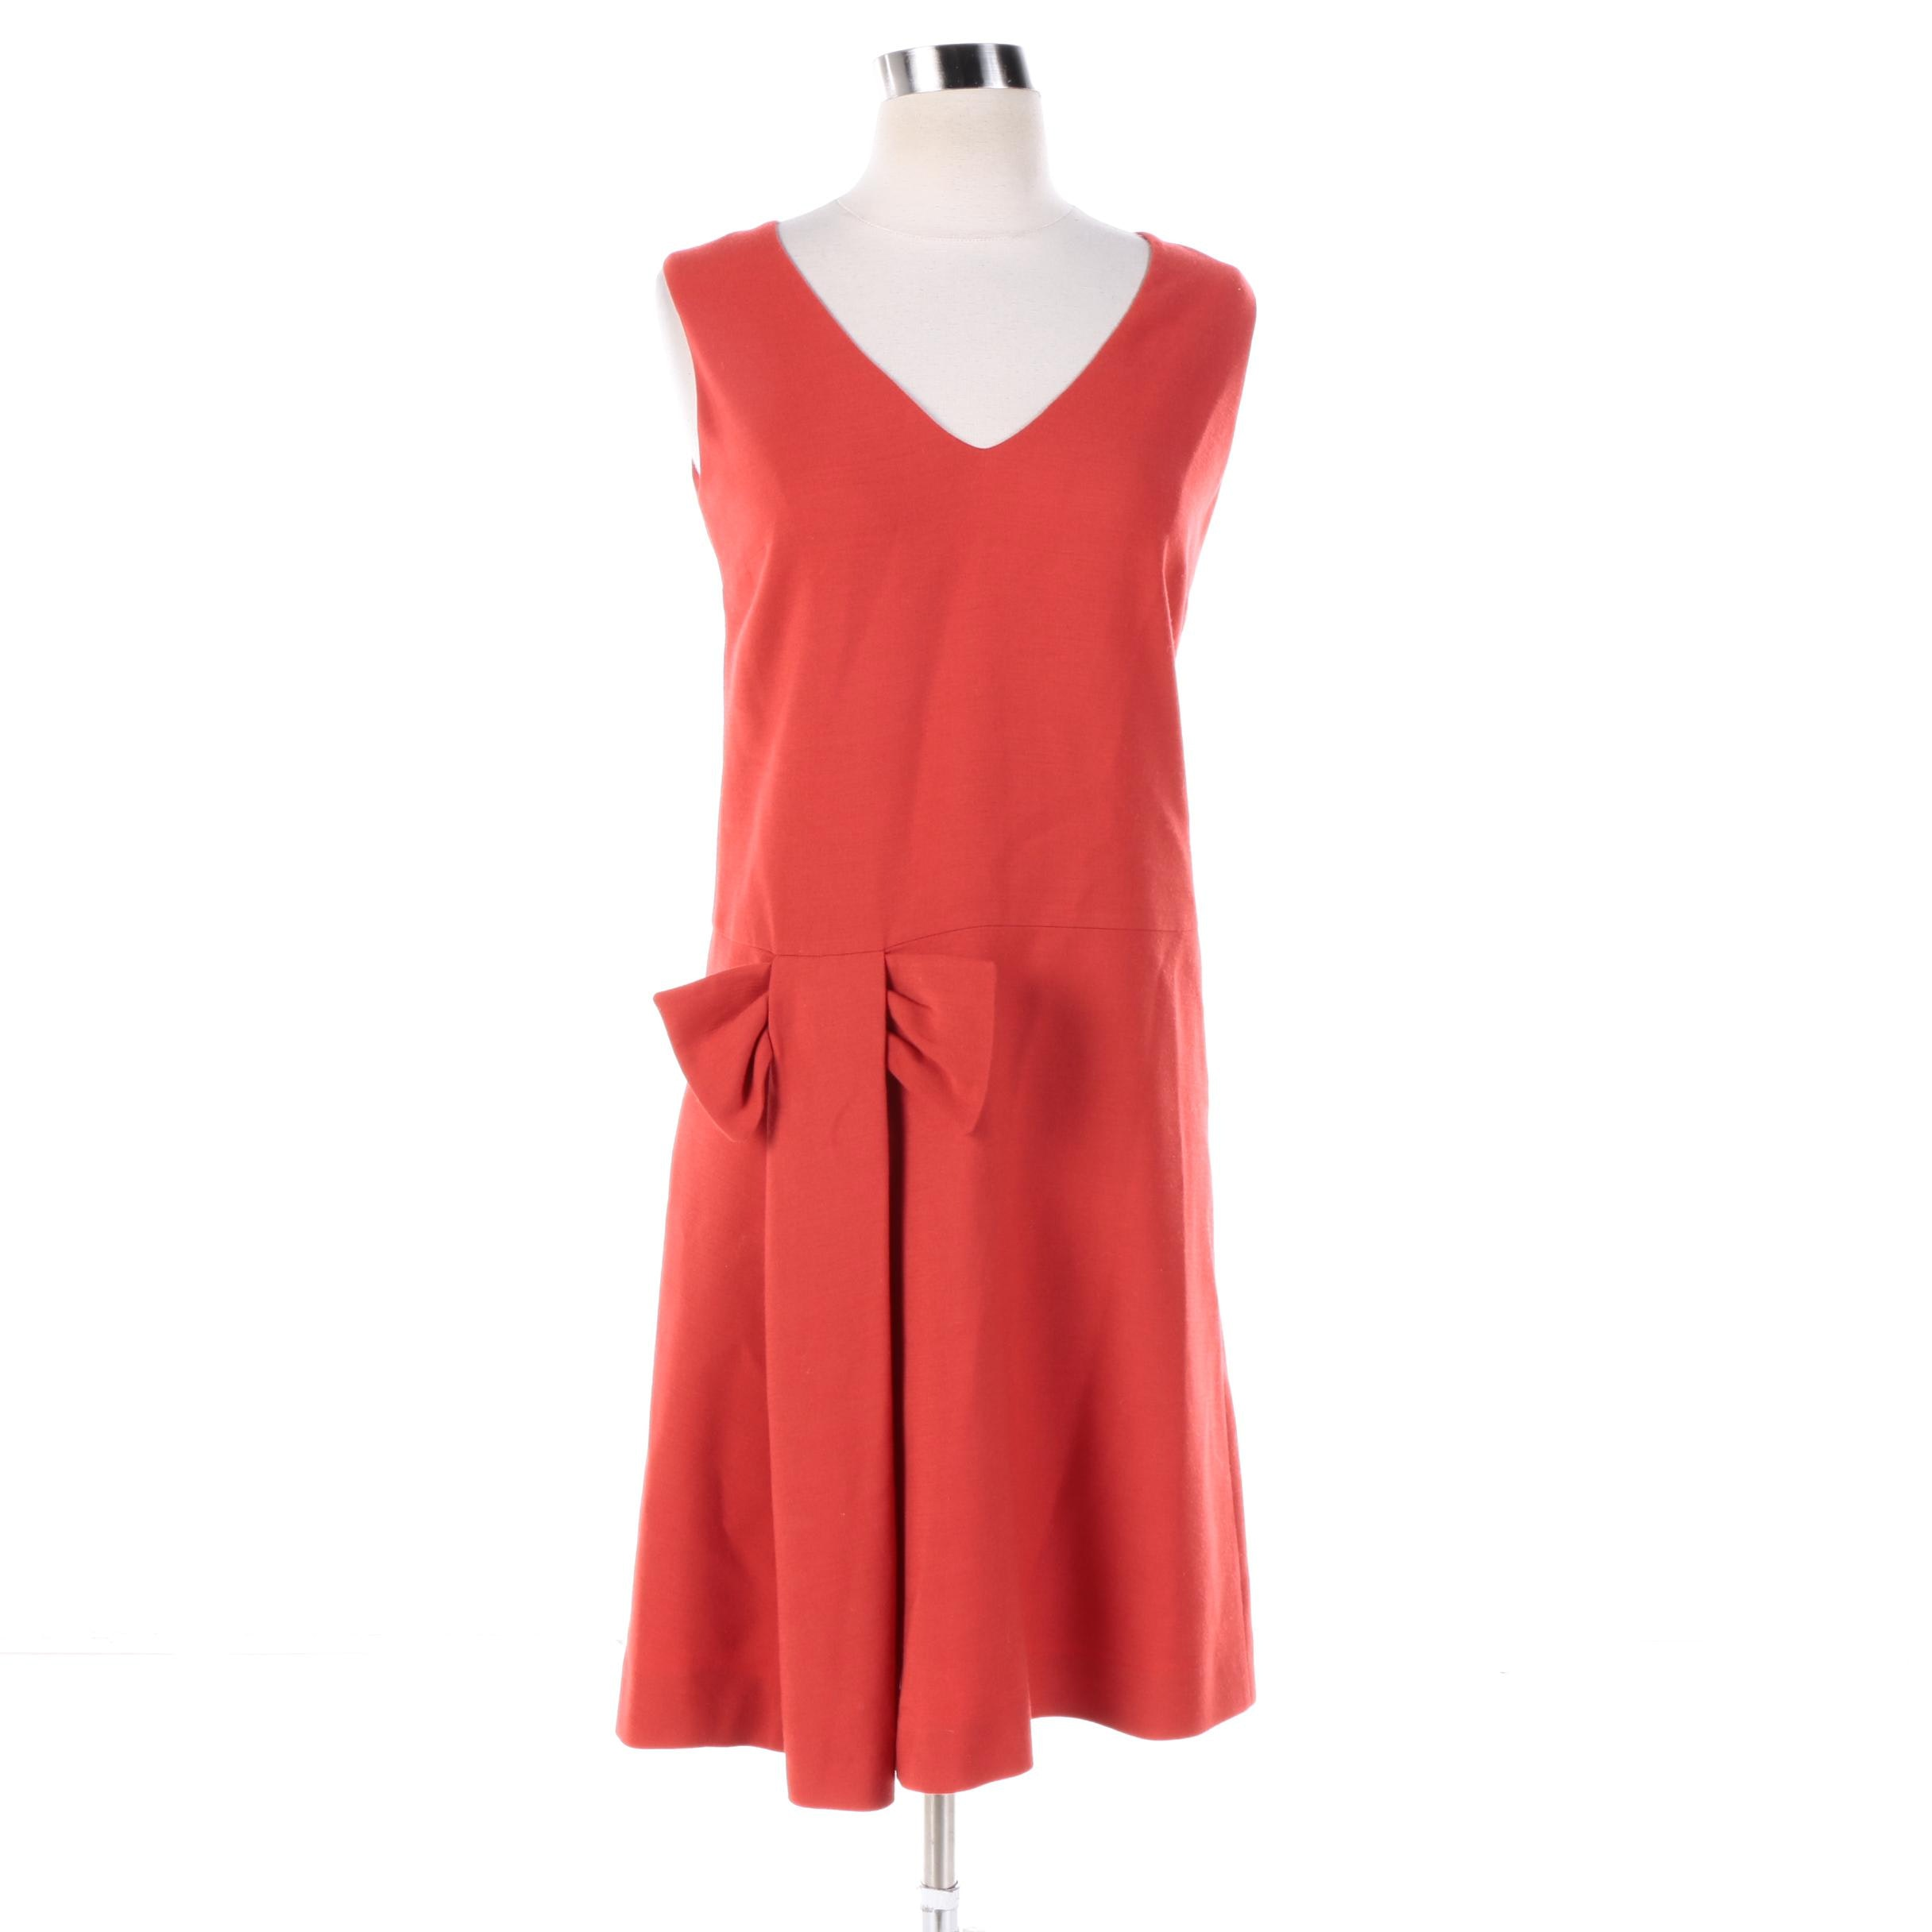 Women's RED Valentino Wool Blend Sleeveless Sheath Dress